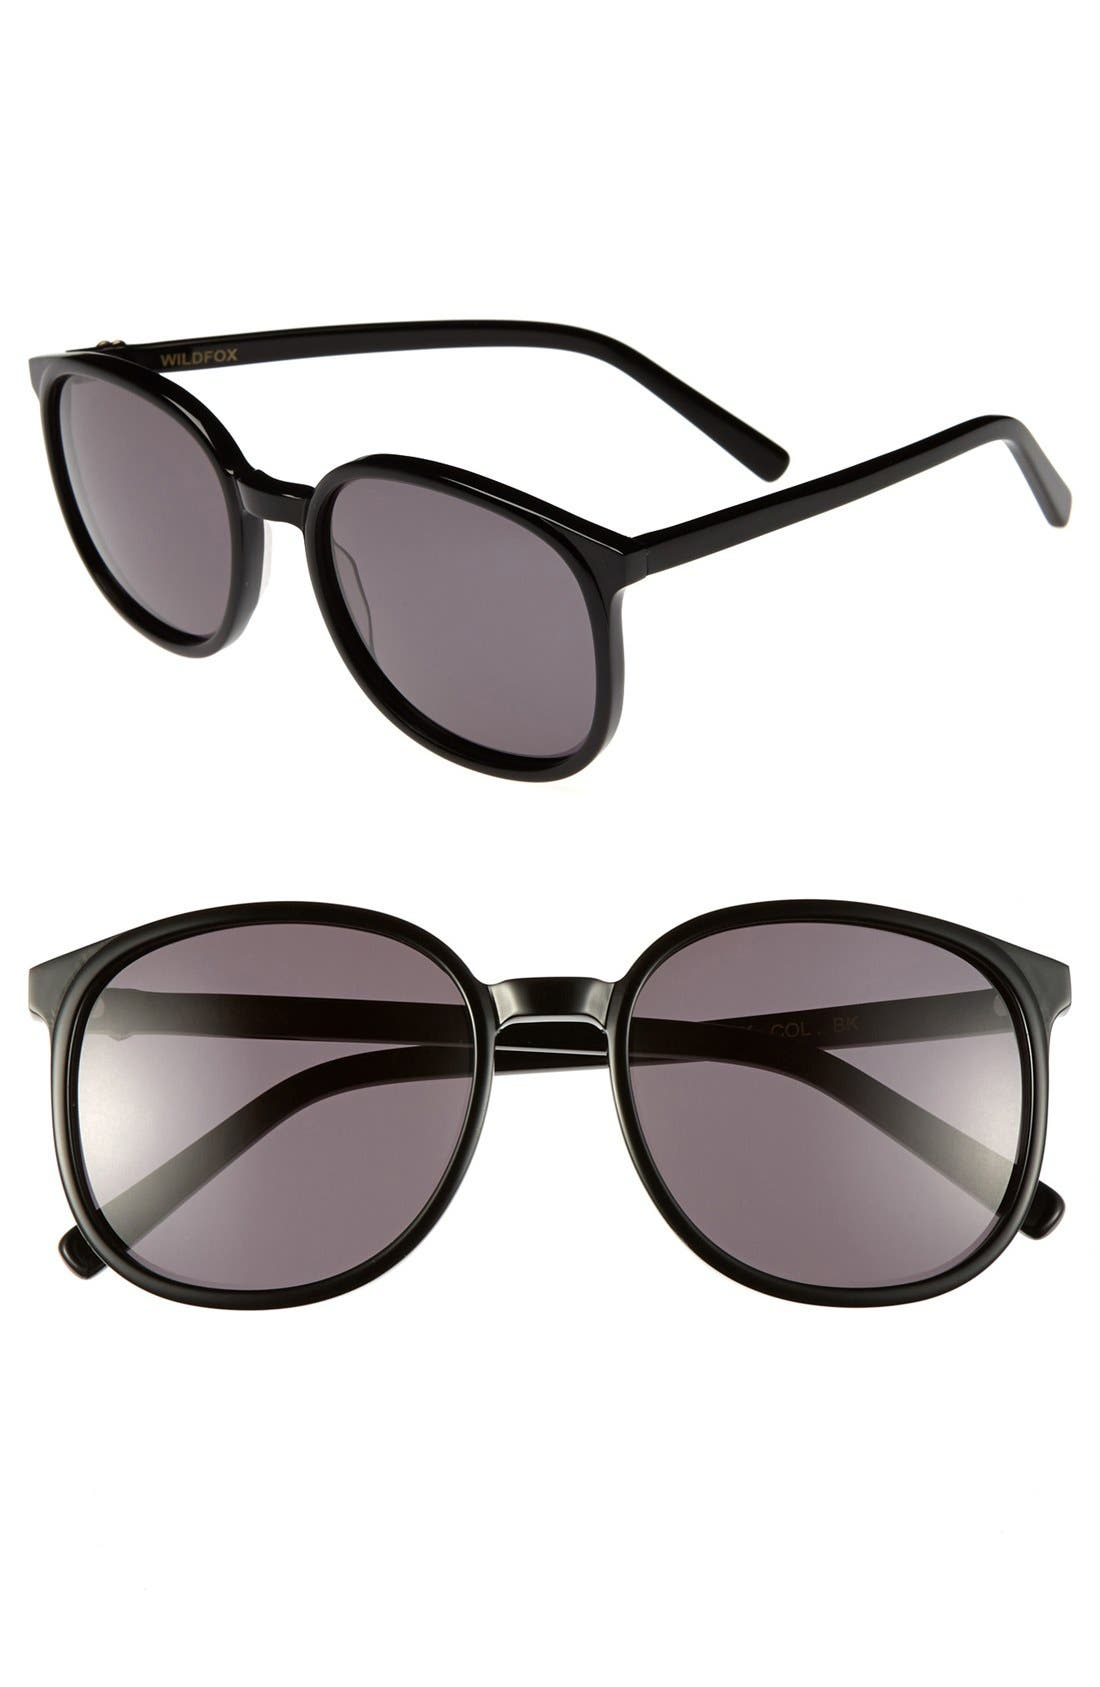 Main Image - Wildfox 'Popfox' Sunglasses